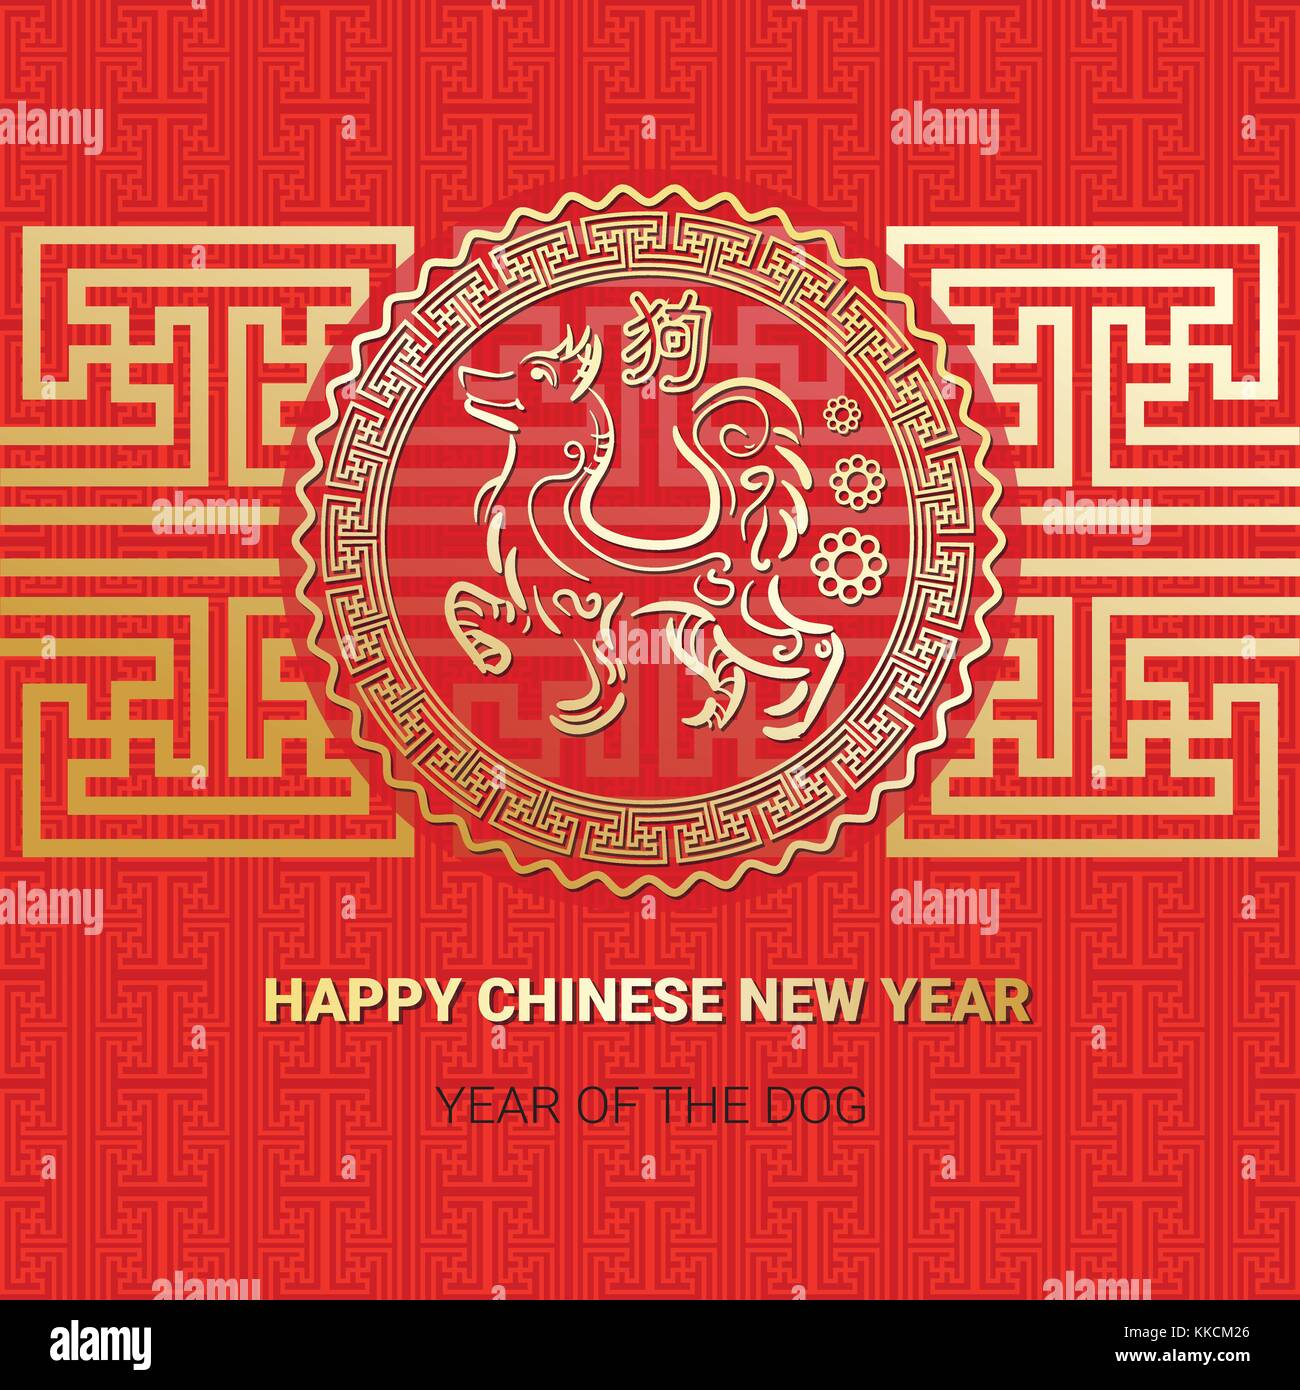 Happy chinese new year greeting card 2018 lunar dog symbol red and happy chinese new year greeting card 2018 lunar dog symbol red and golden colors m4hsunfo